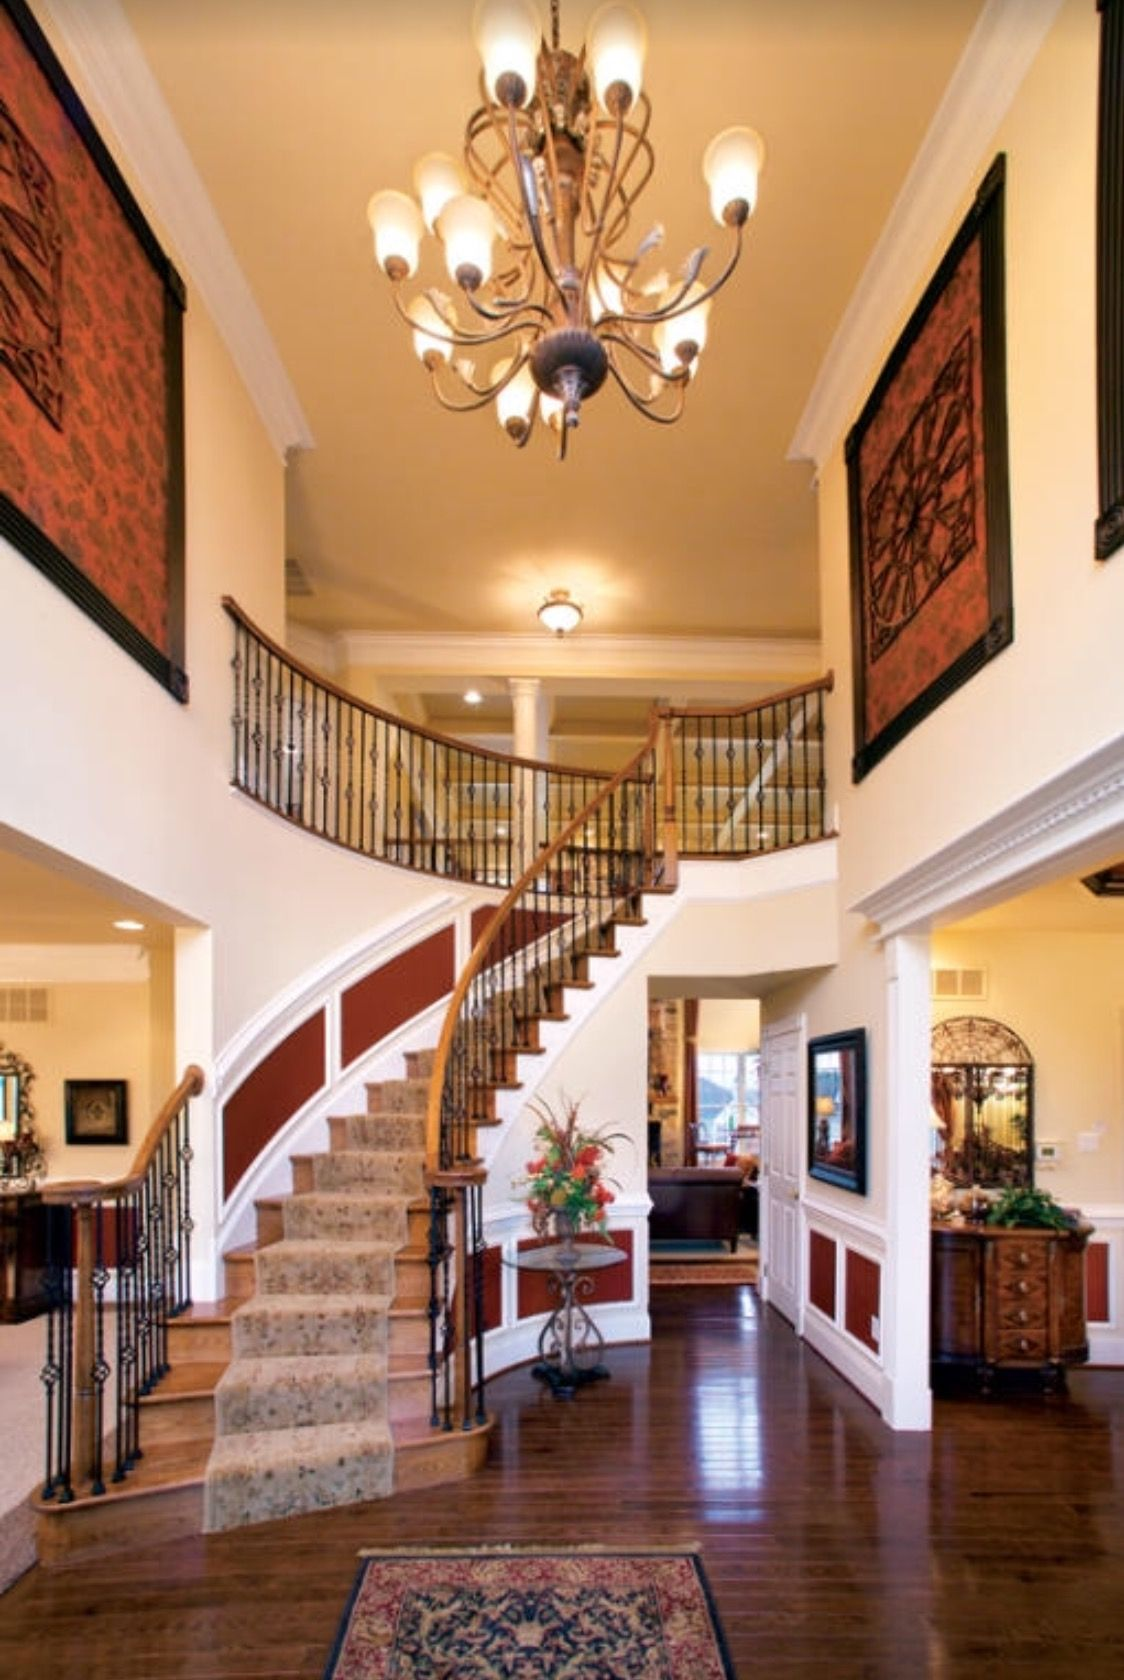 Pin by Sami A on Staircase designs   Staircase design ...